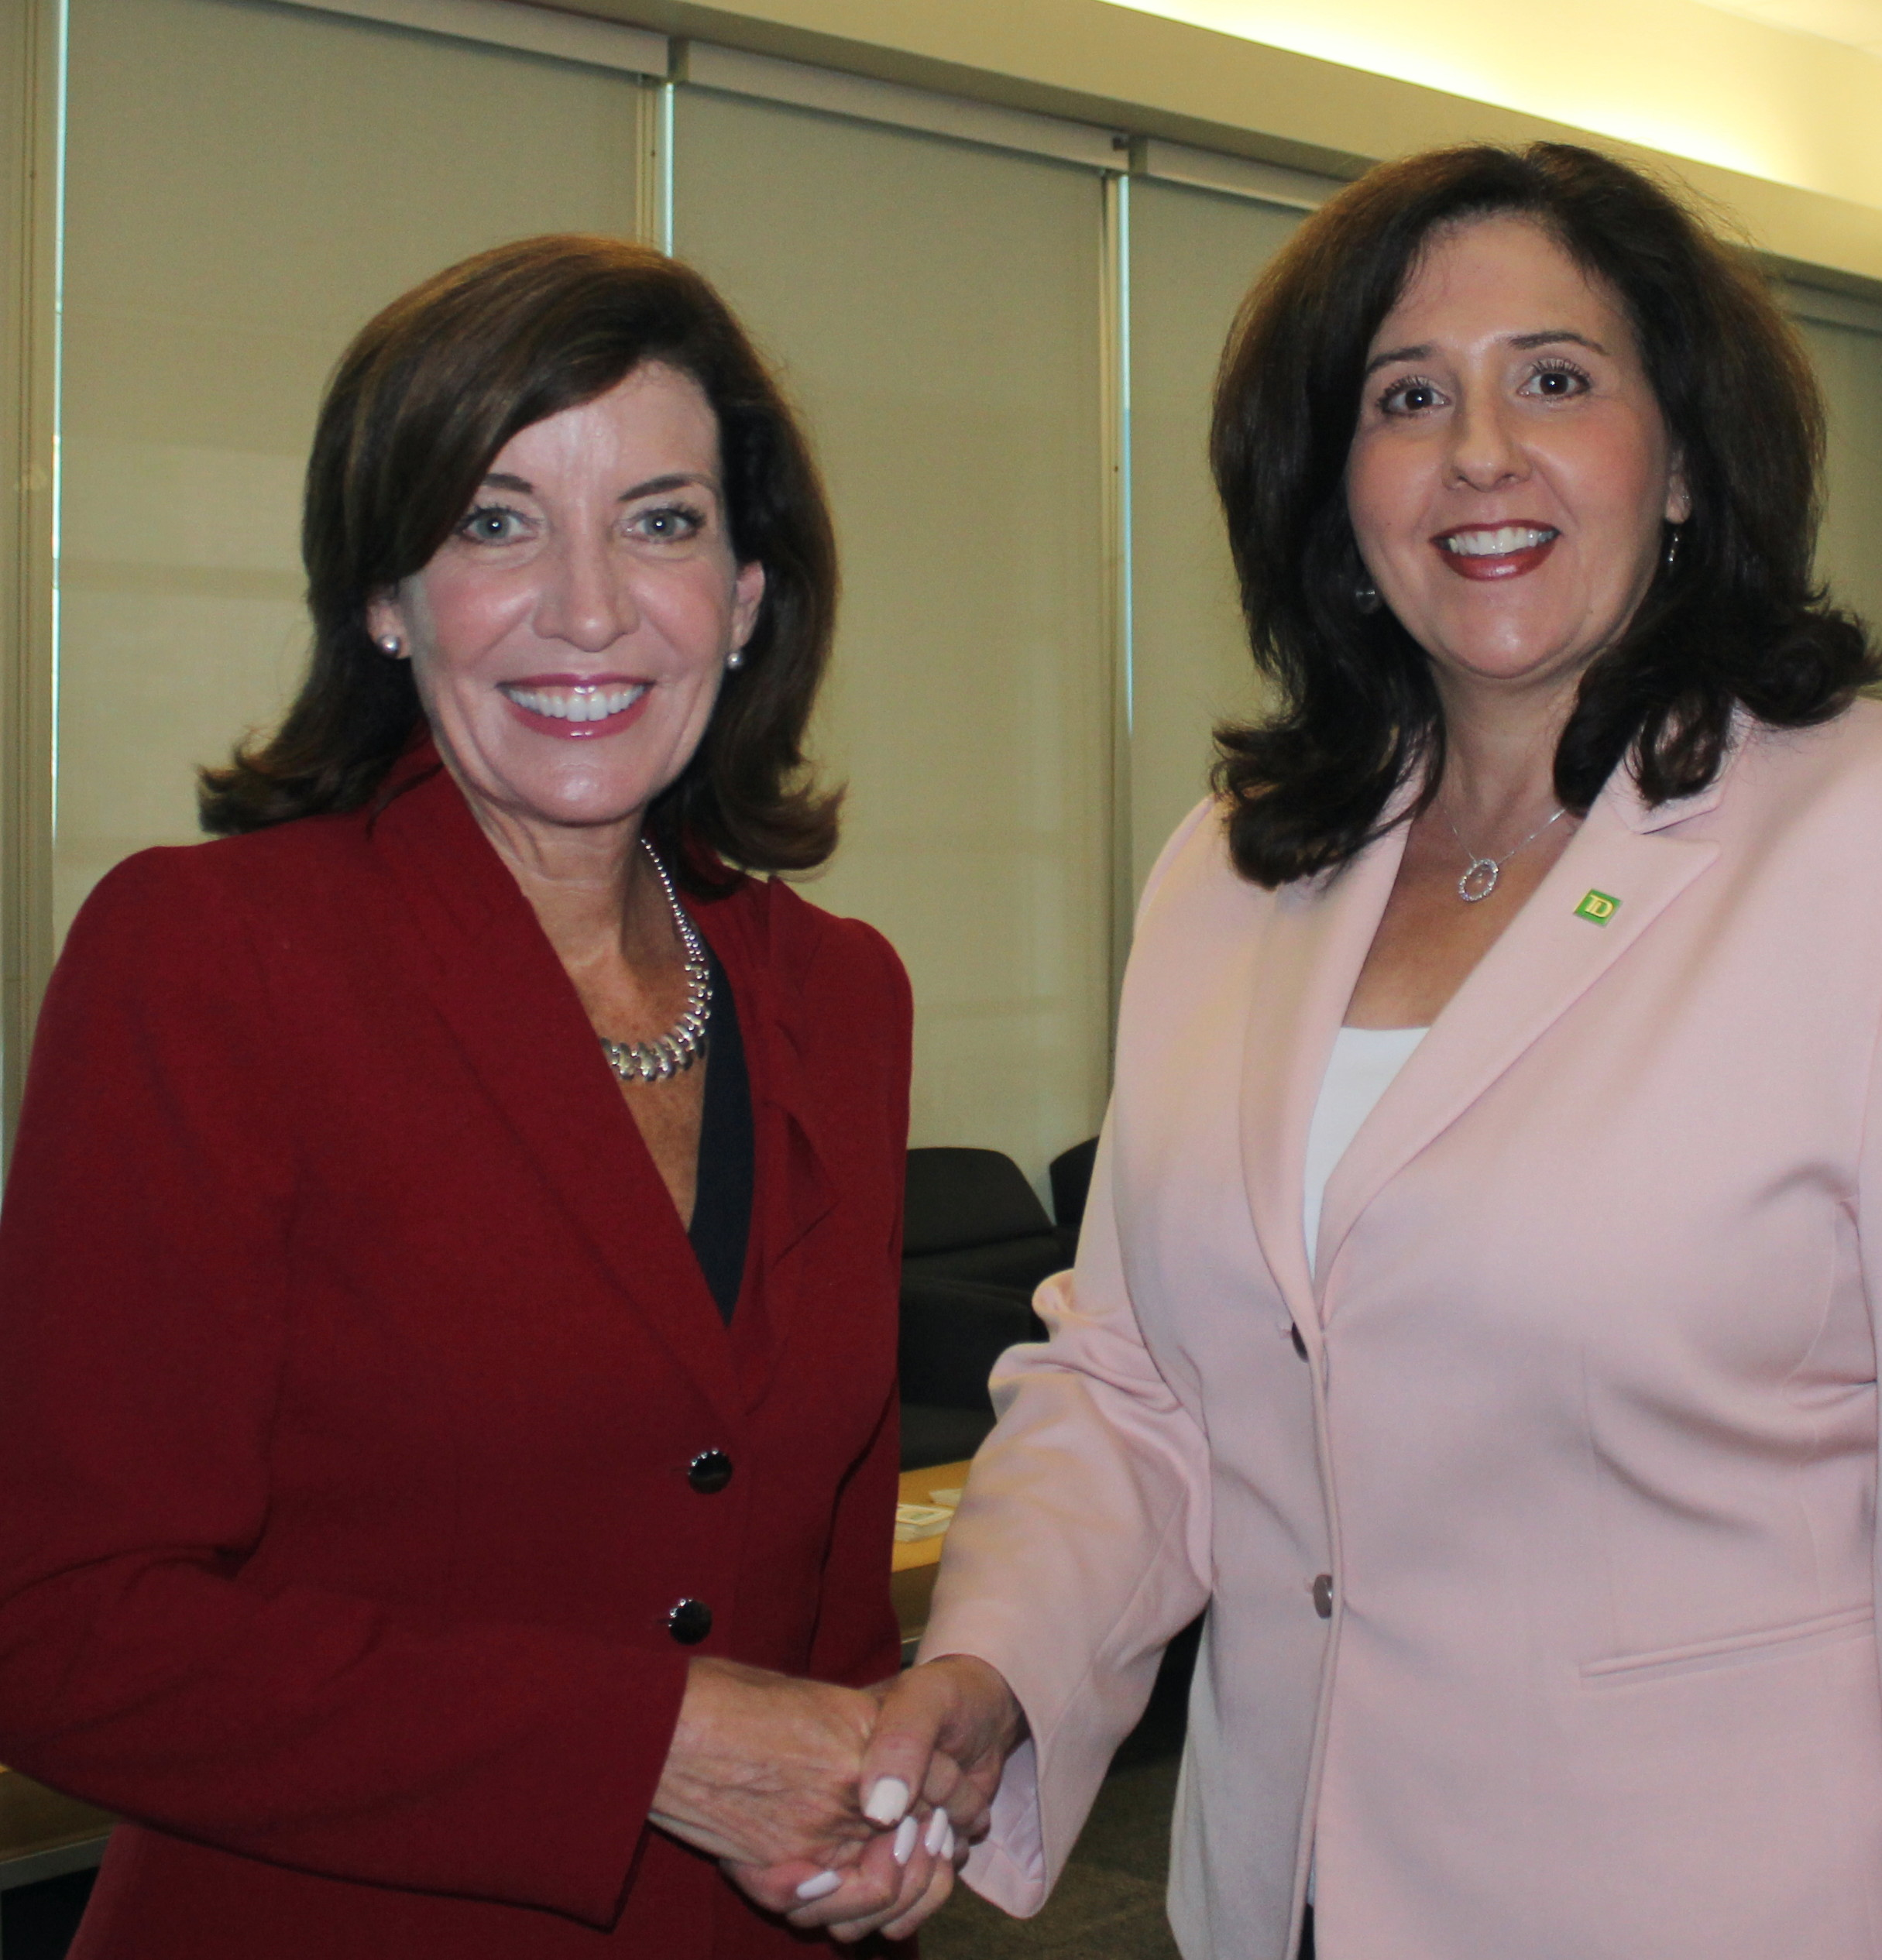 Hochul to lead New York